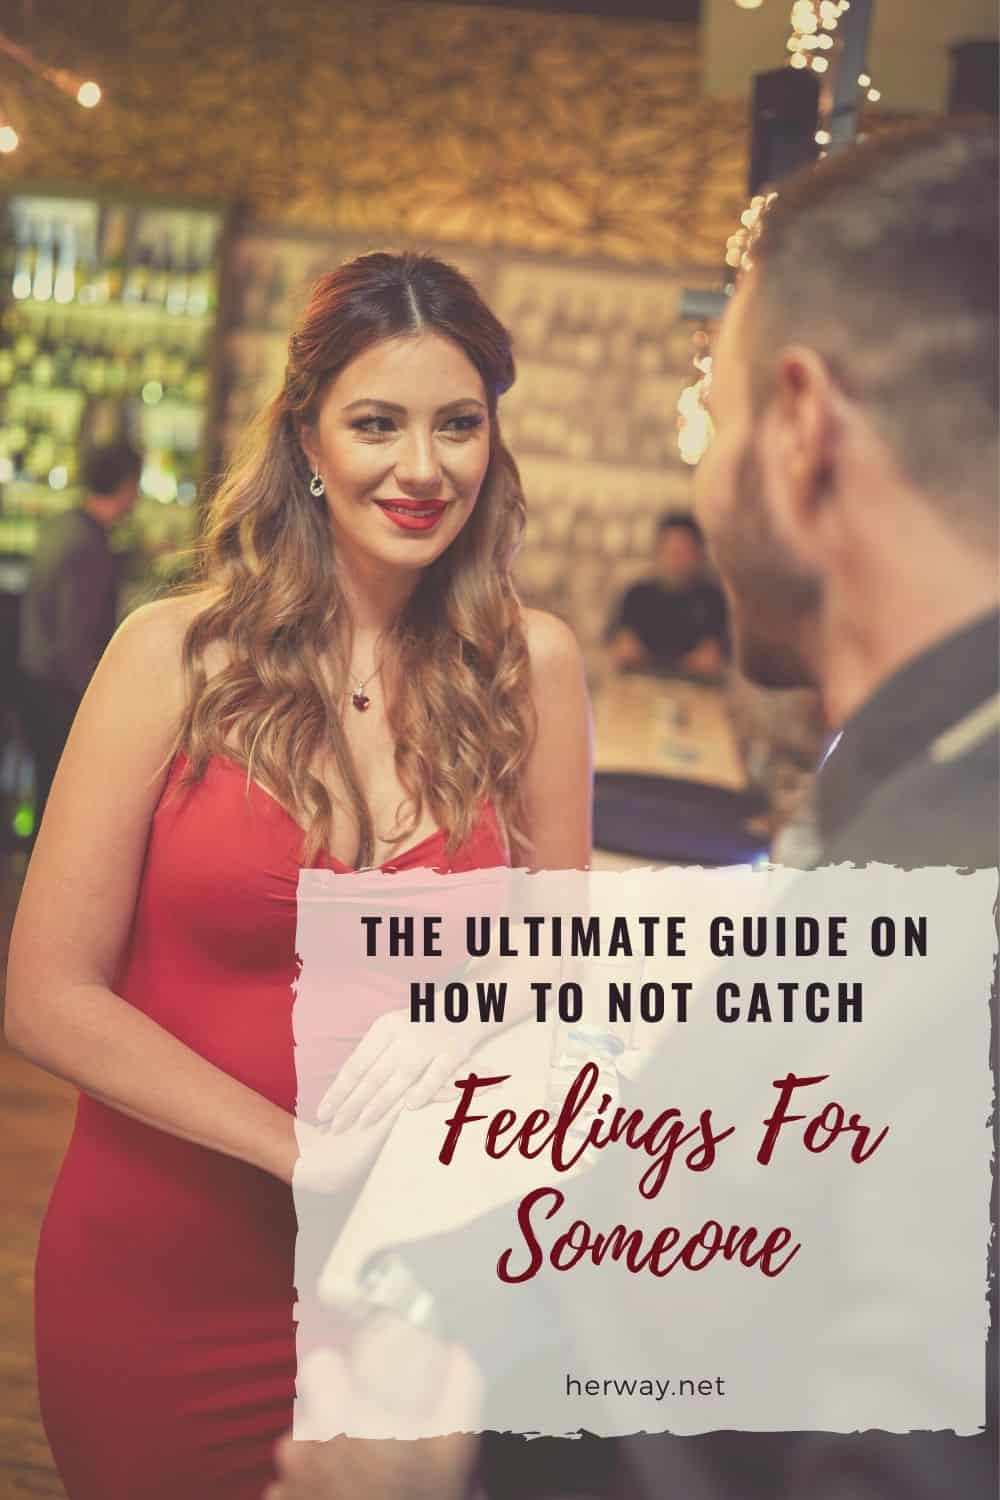 The Ultimate Guide On How To NOT Catch Feelings For Someone